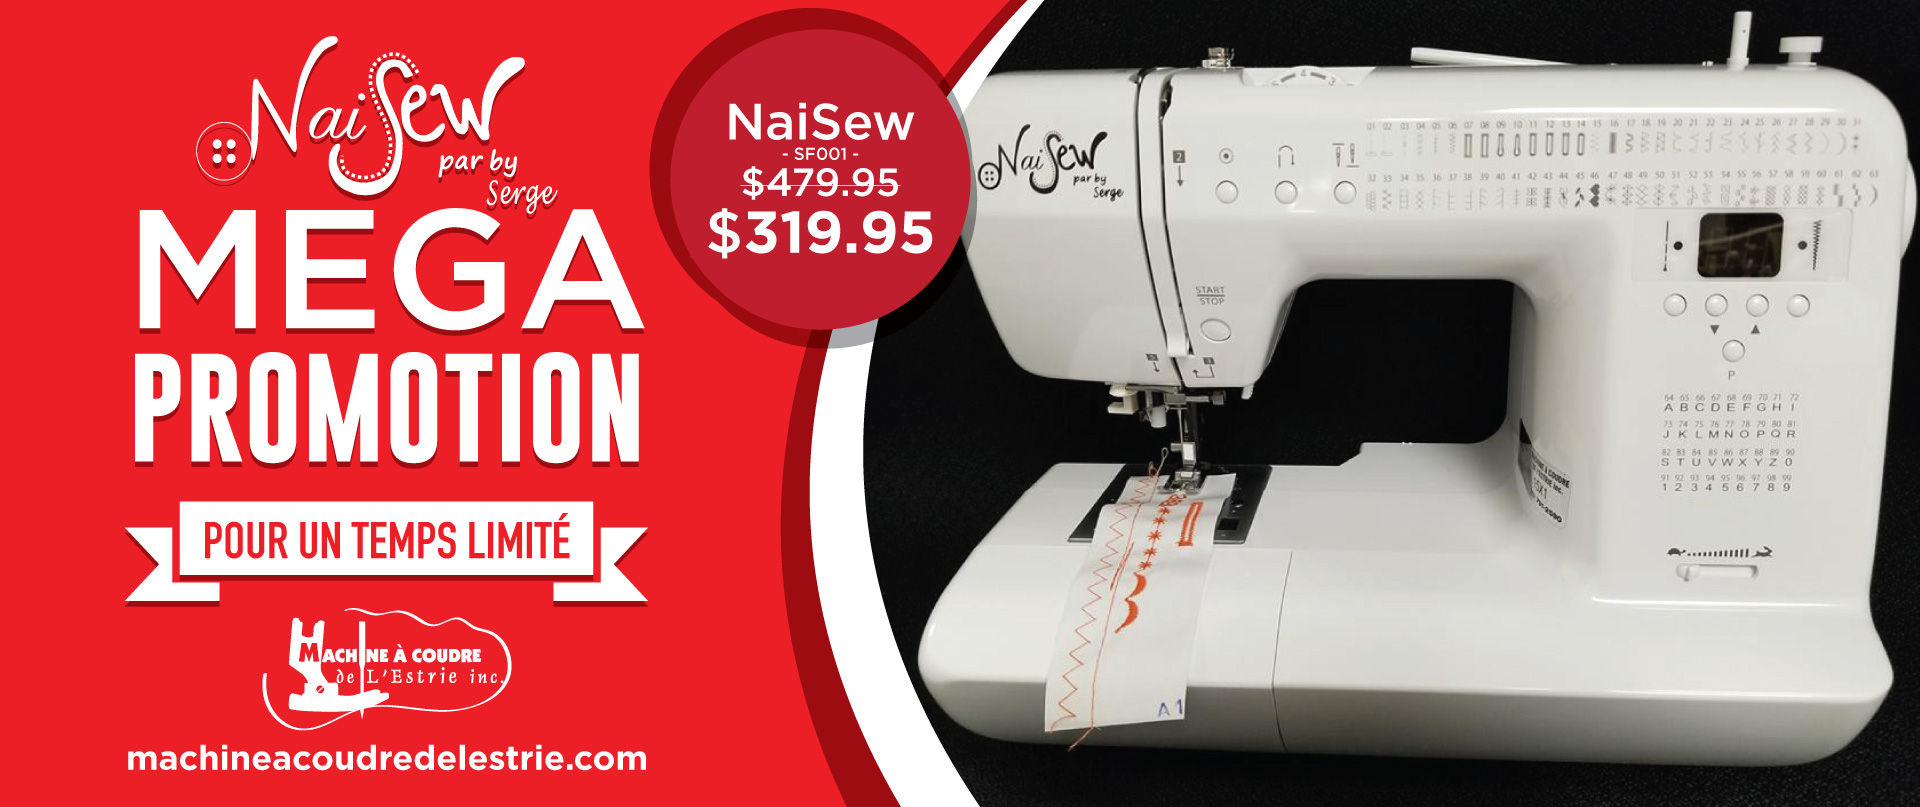 BANNER-PROMO-NAISEW-SF001